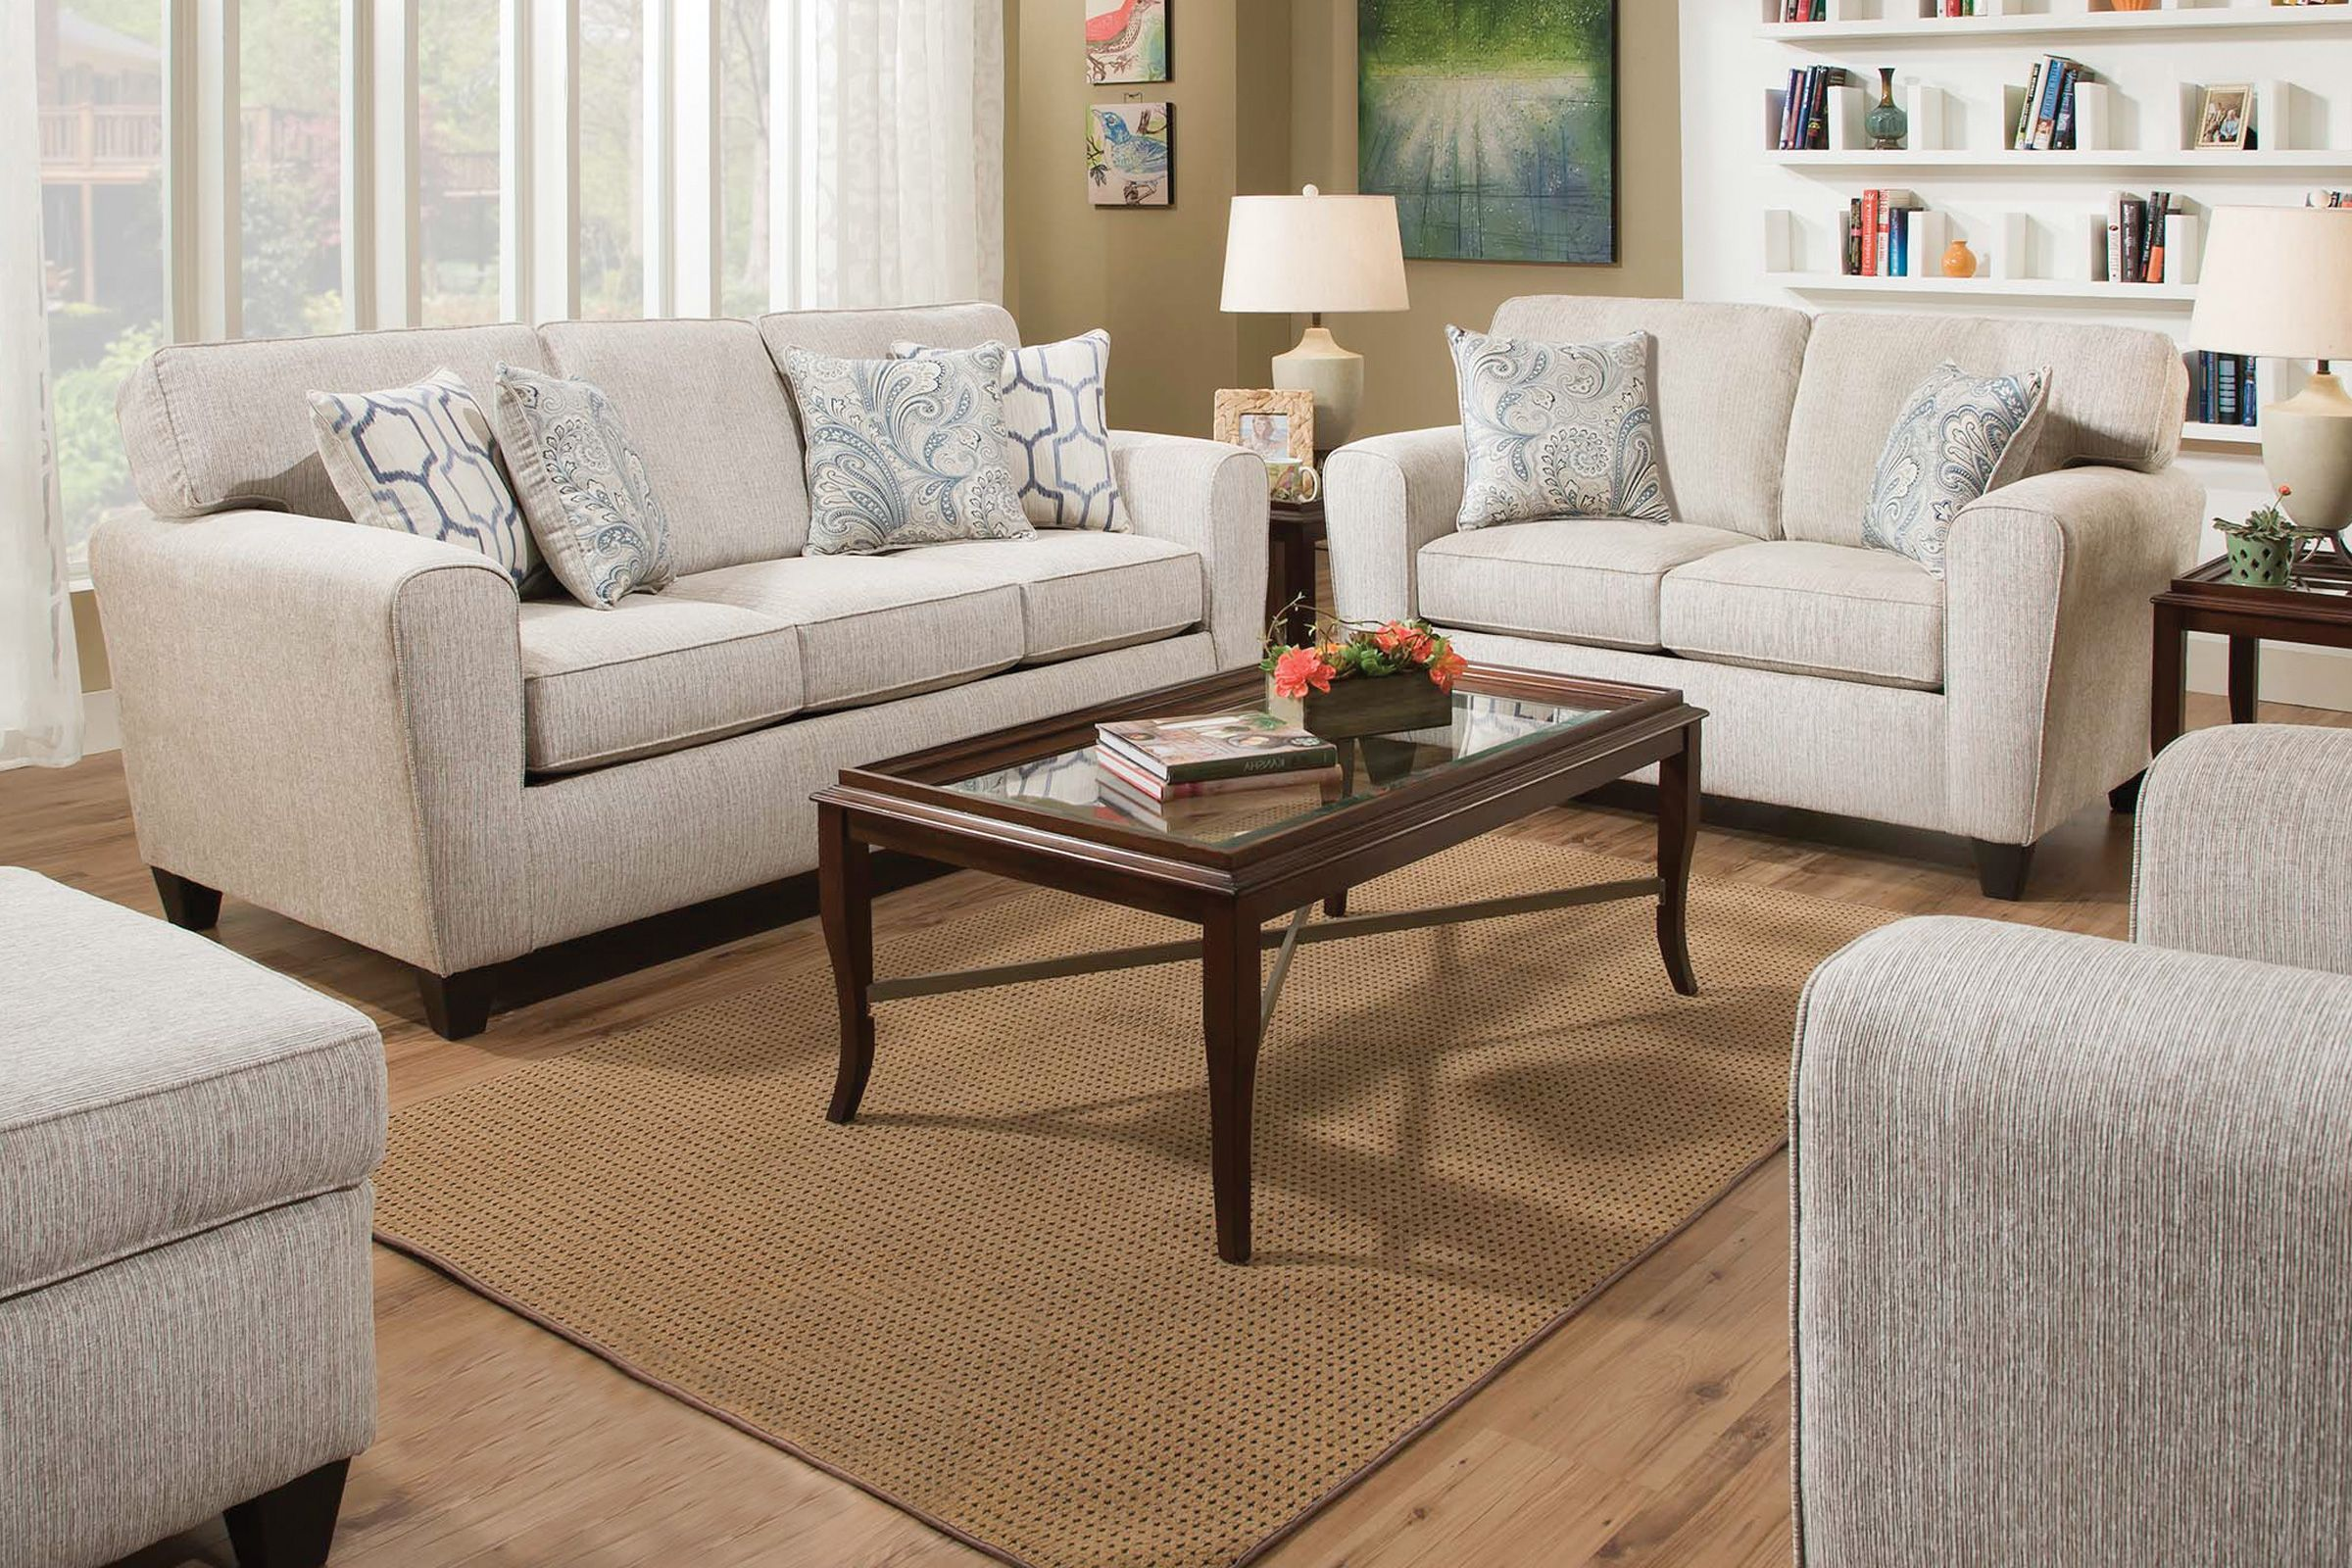 Uptown Storage Ottoman In 2020 Living Room Designs White Living Room Set Furniture